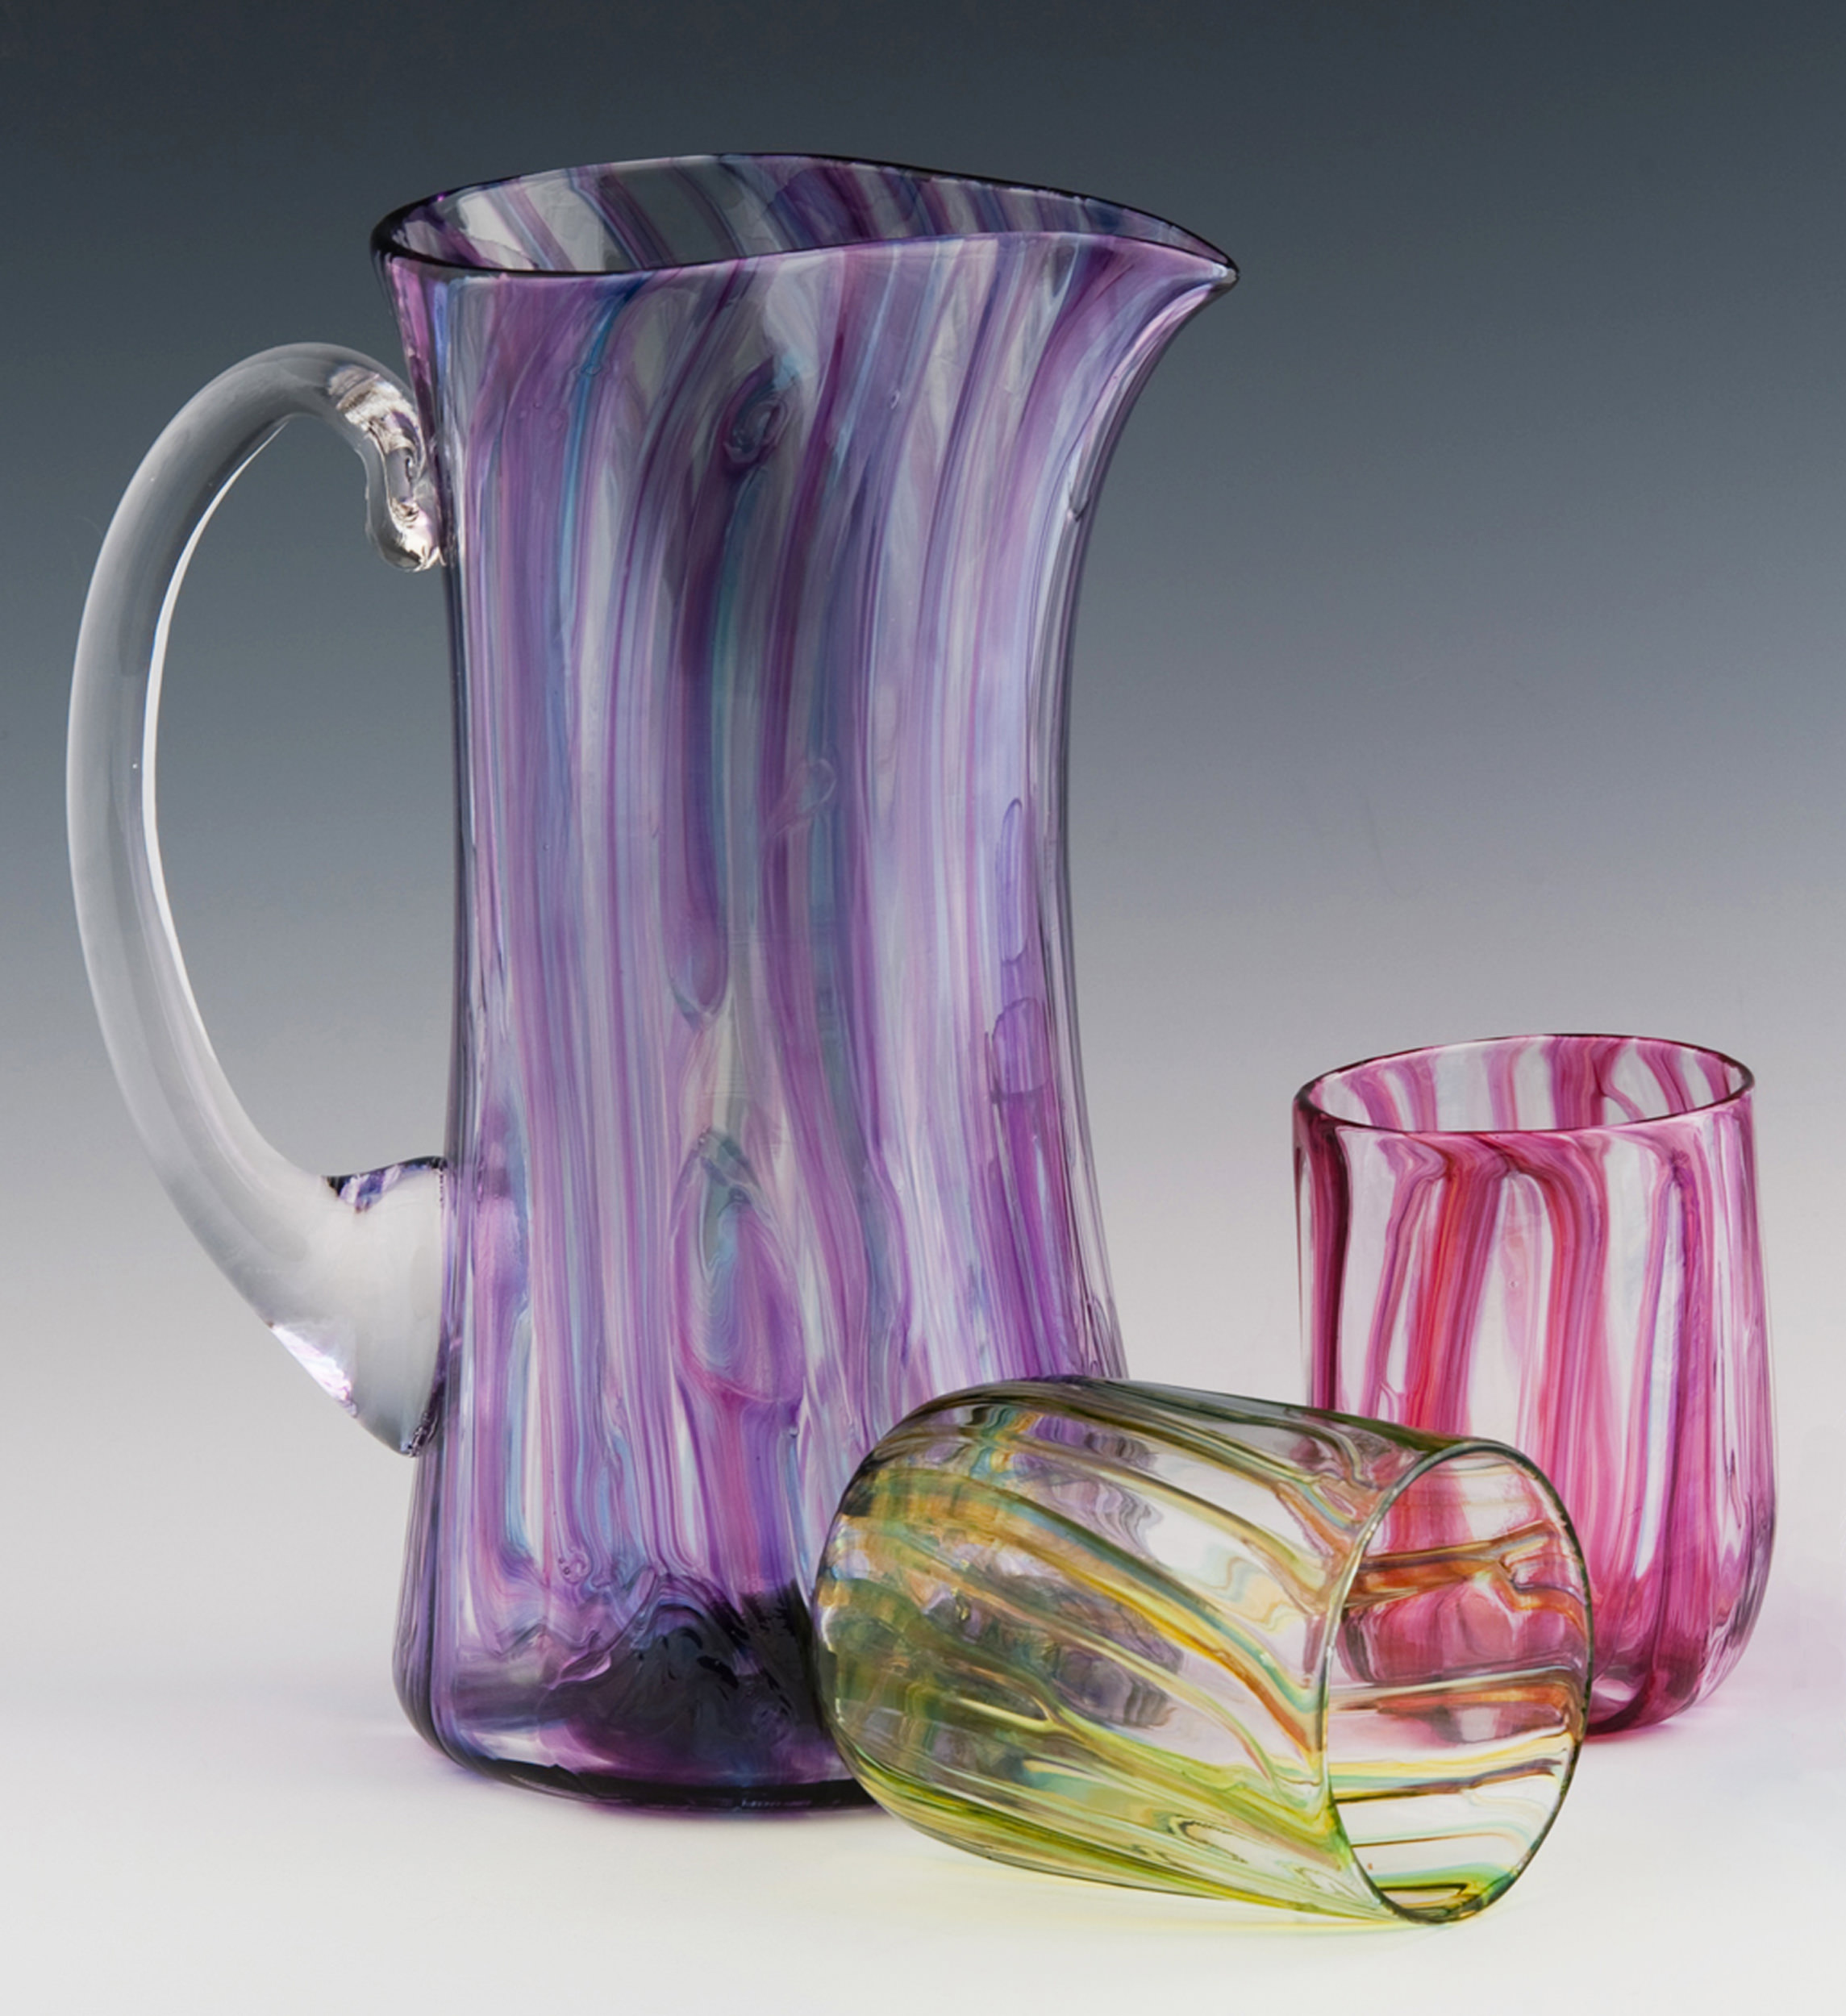 River Pitcher seen here in Purple Ribbons, tumblers shown in Lime and Red Ribbons.